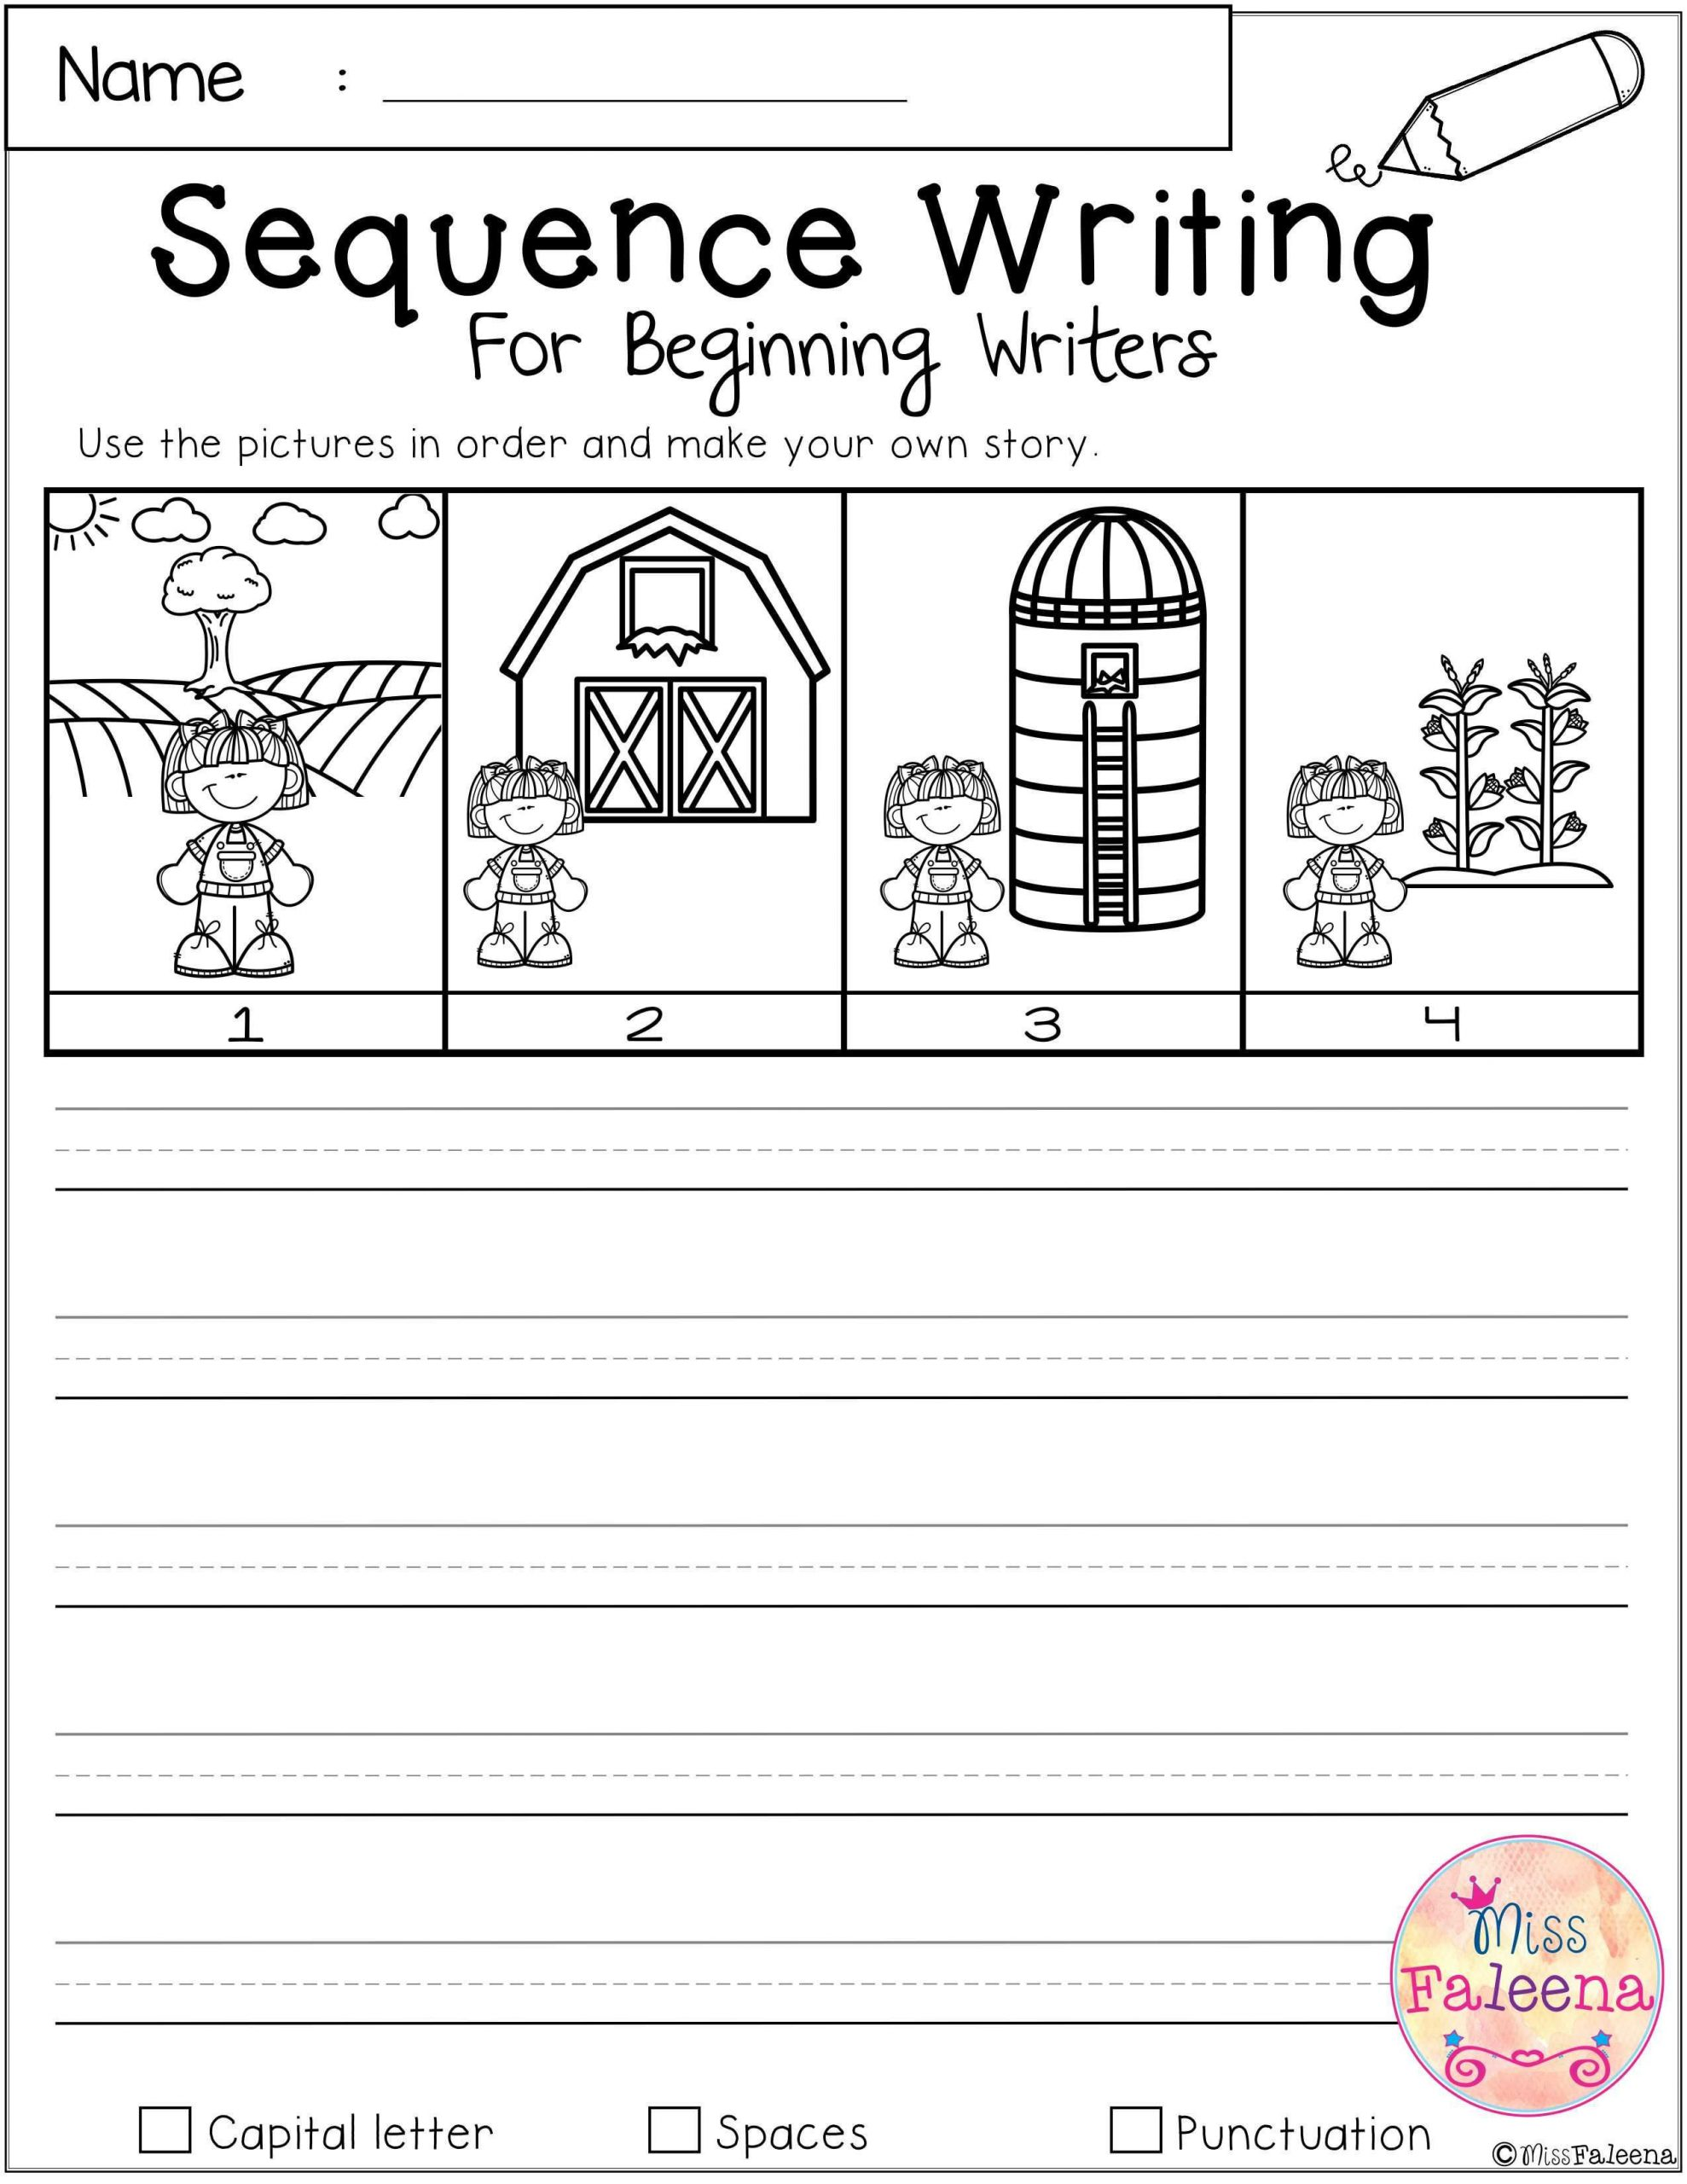 Sequencing Worksheets for Middle School Free Sequence Writing for Beginning Writers